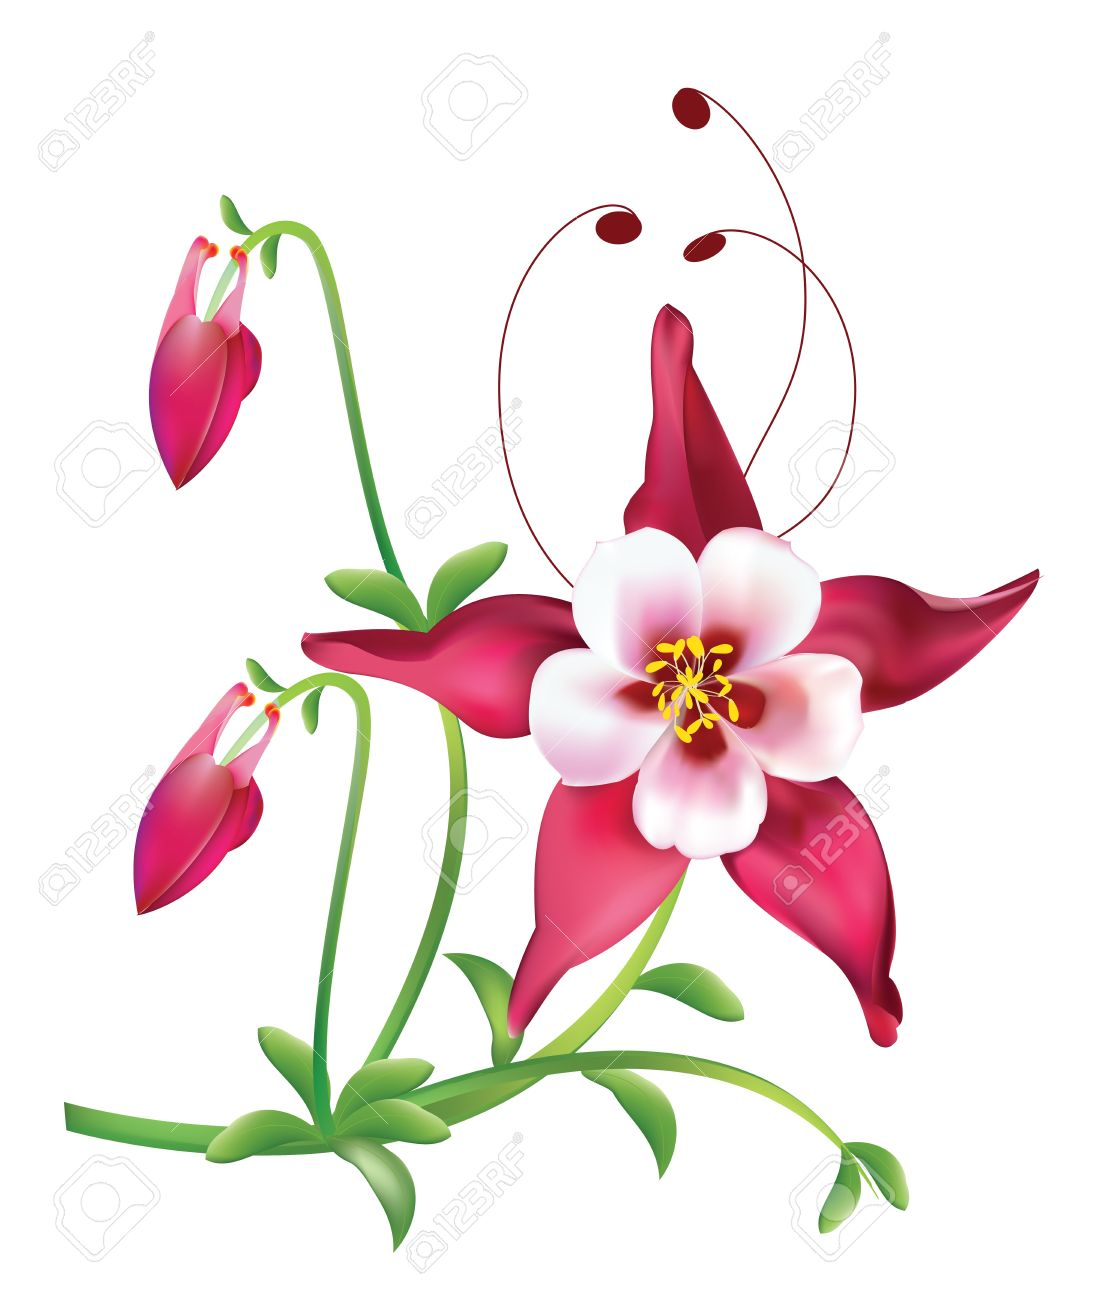 Columbine flower images stock pictures royalty free columbine columbine flower red columbine flower dhlflorist Gallery